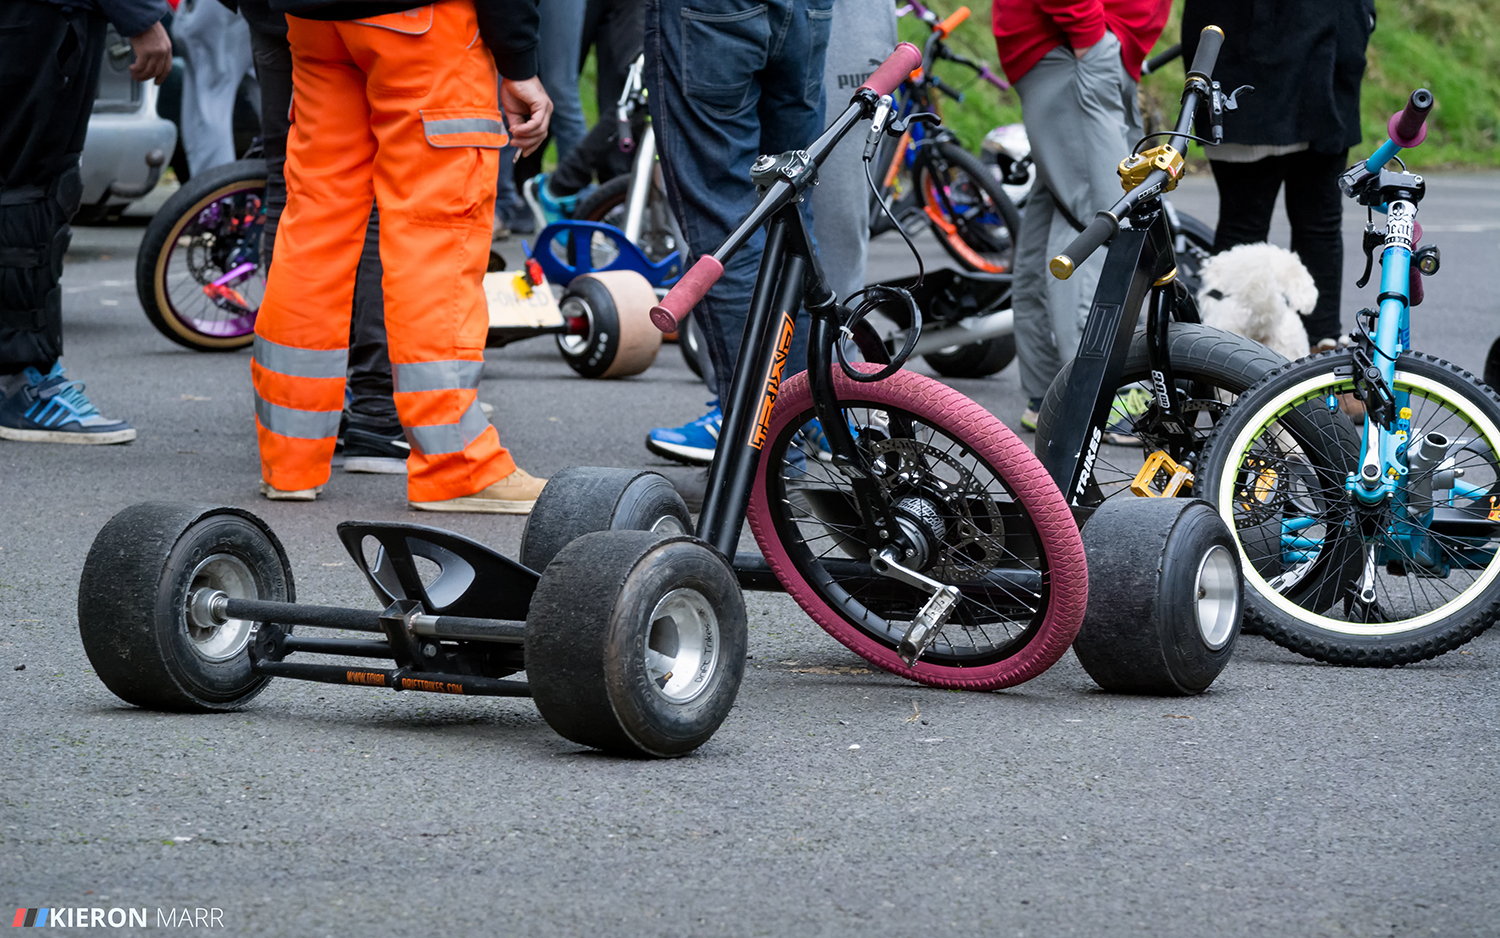 Drift trike and riders